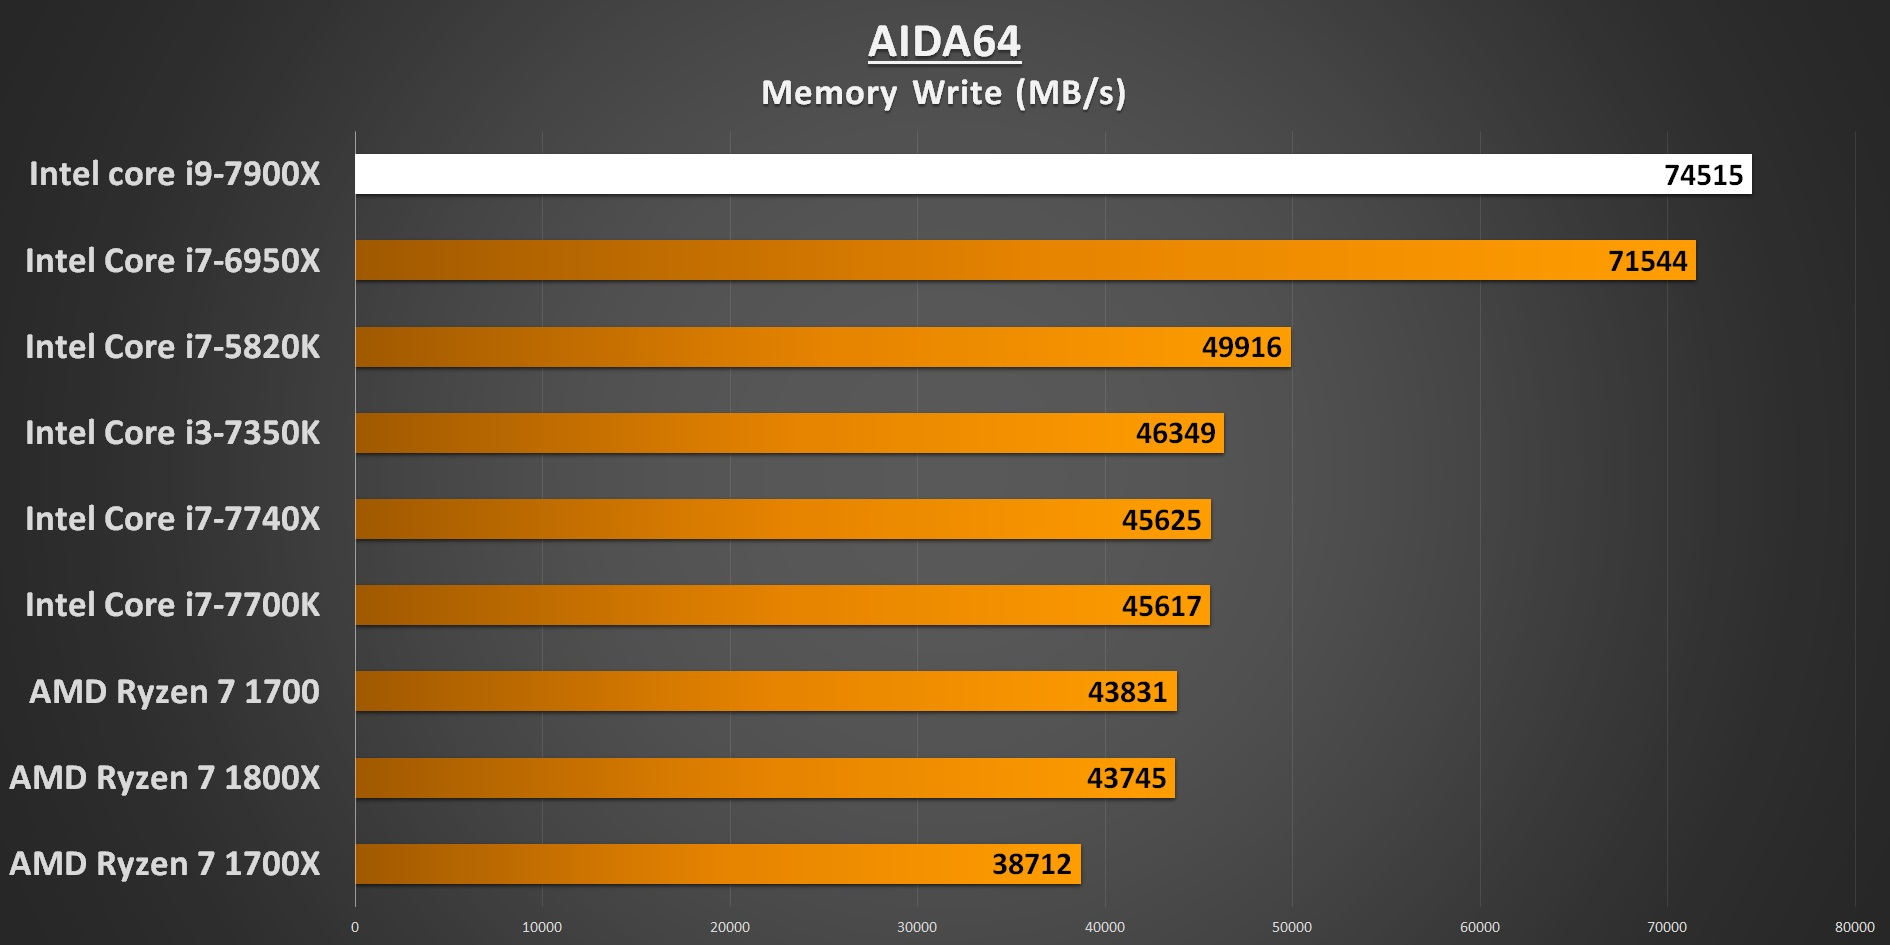 AIDA64 Memory Write 7900X Performance